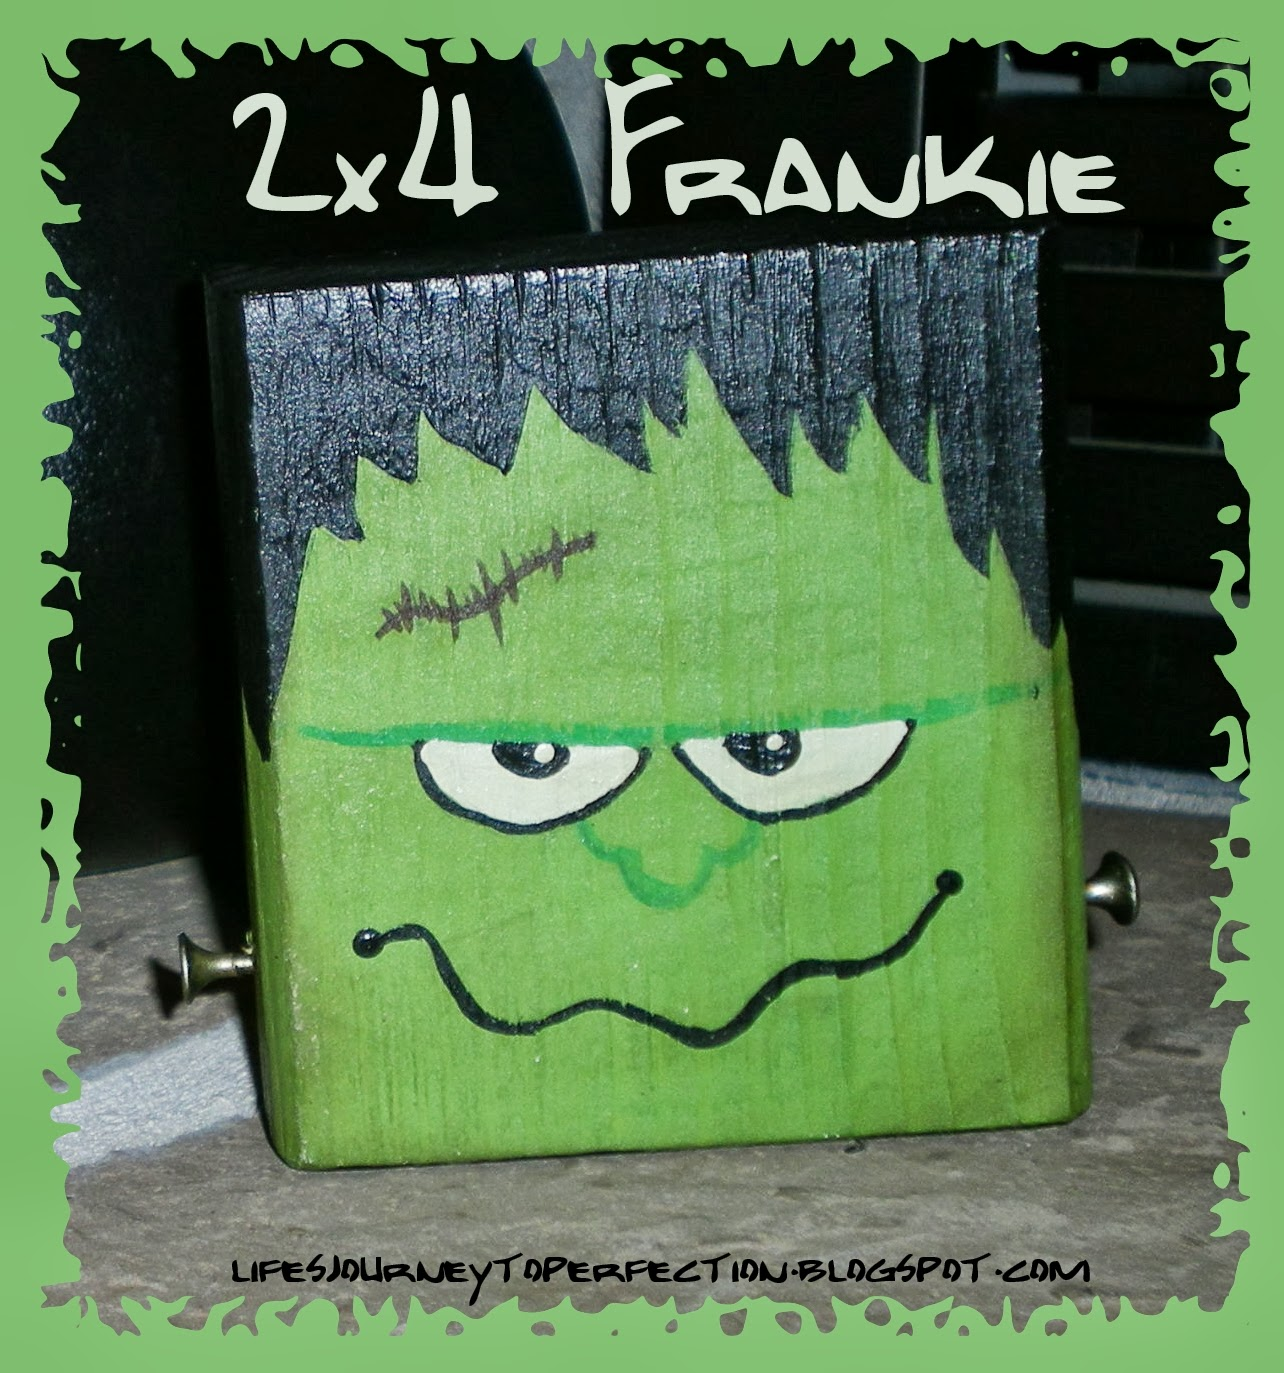 Life S Journey To Perfection Halloween Craft 4 2x4 Frankie